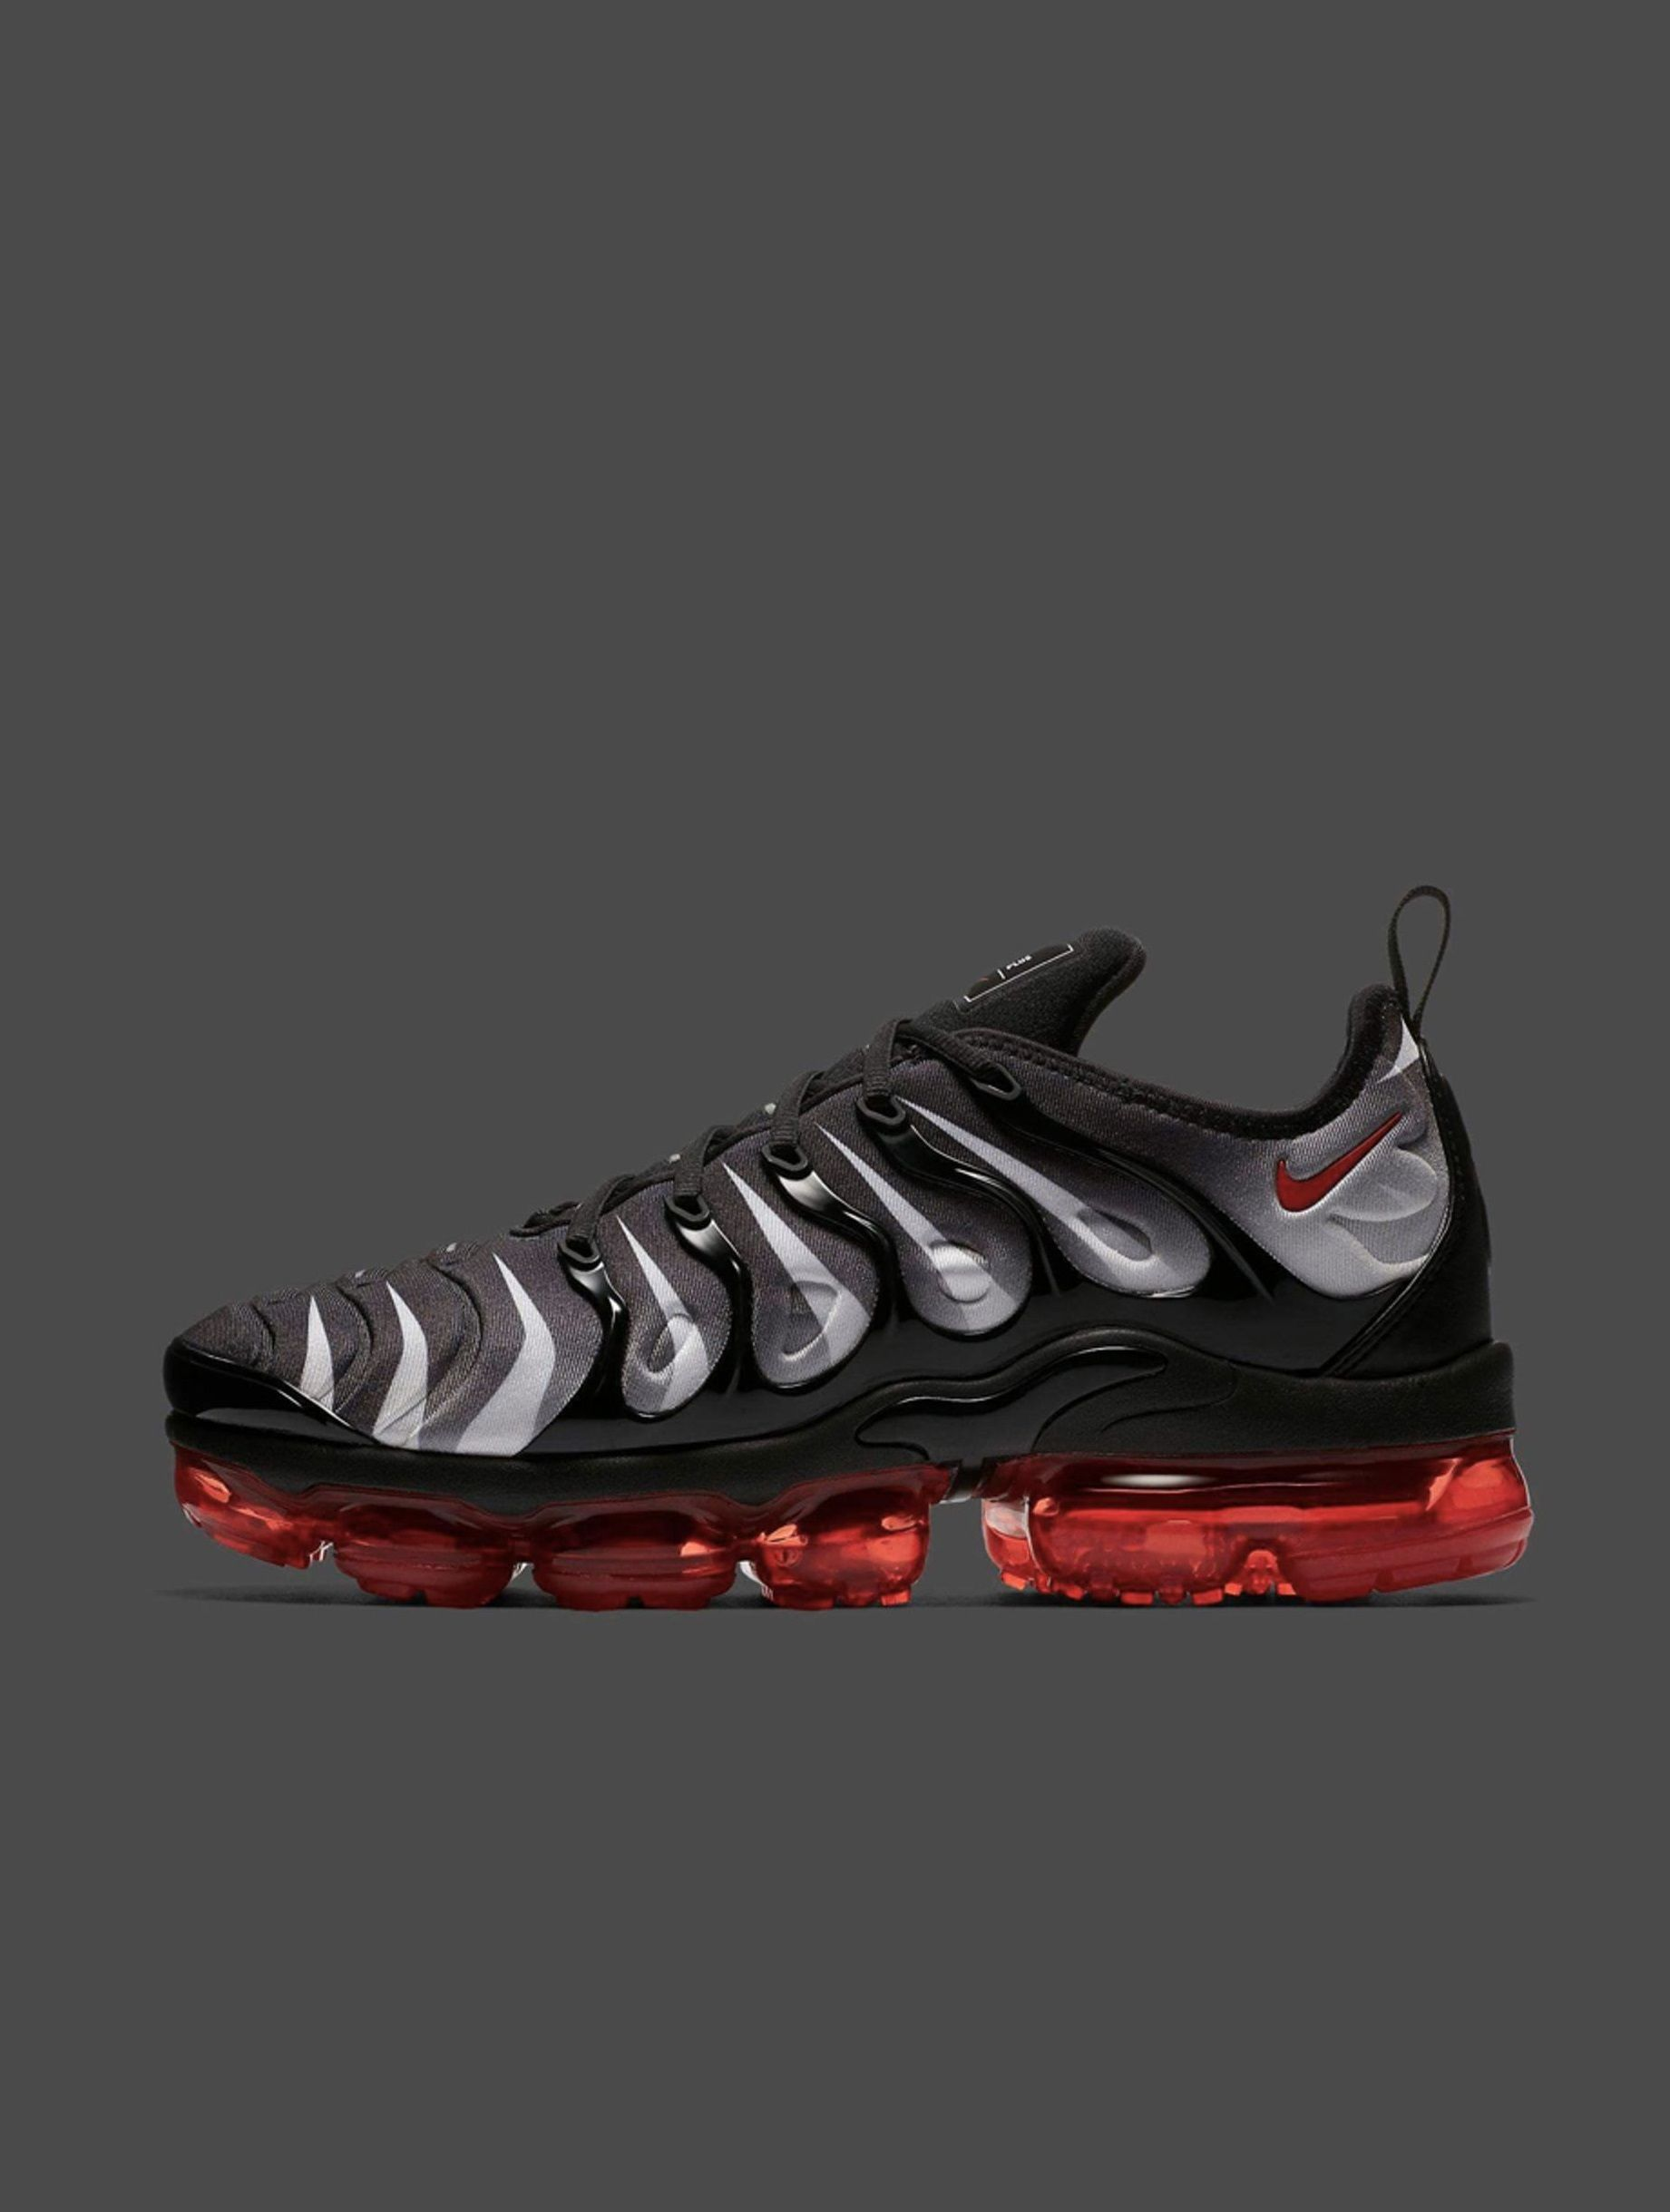 060c30e426b03 Nike Air Vapormax Plus